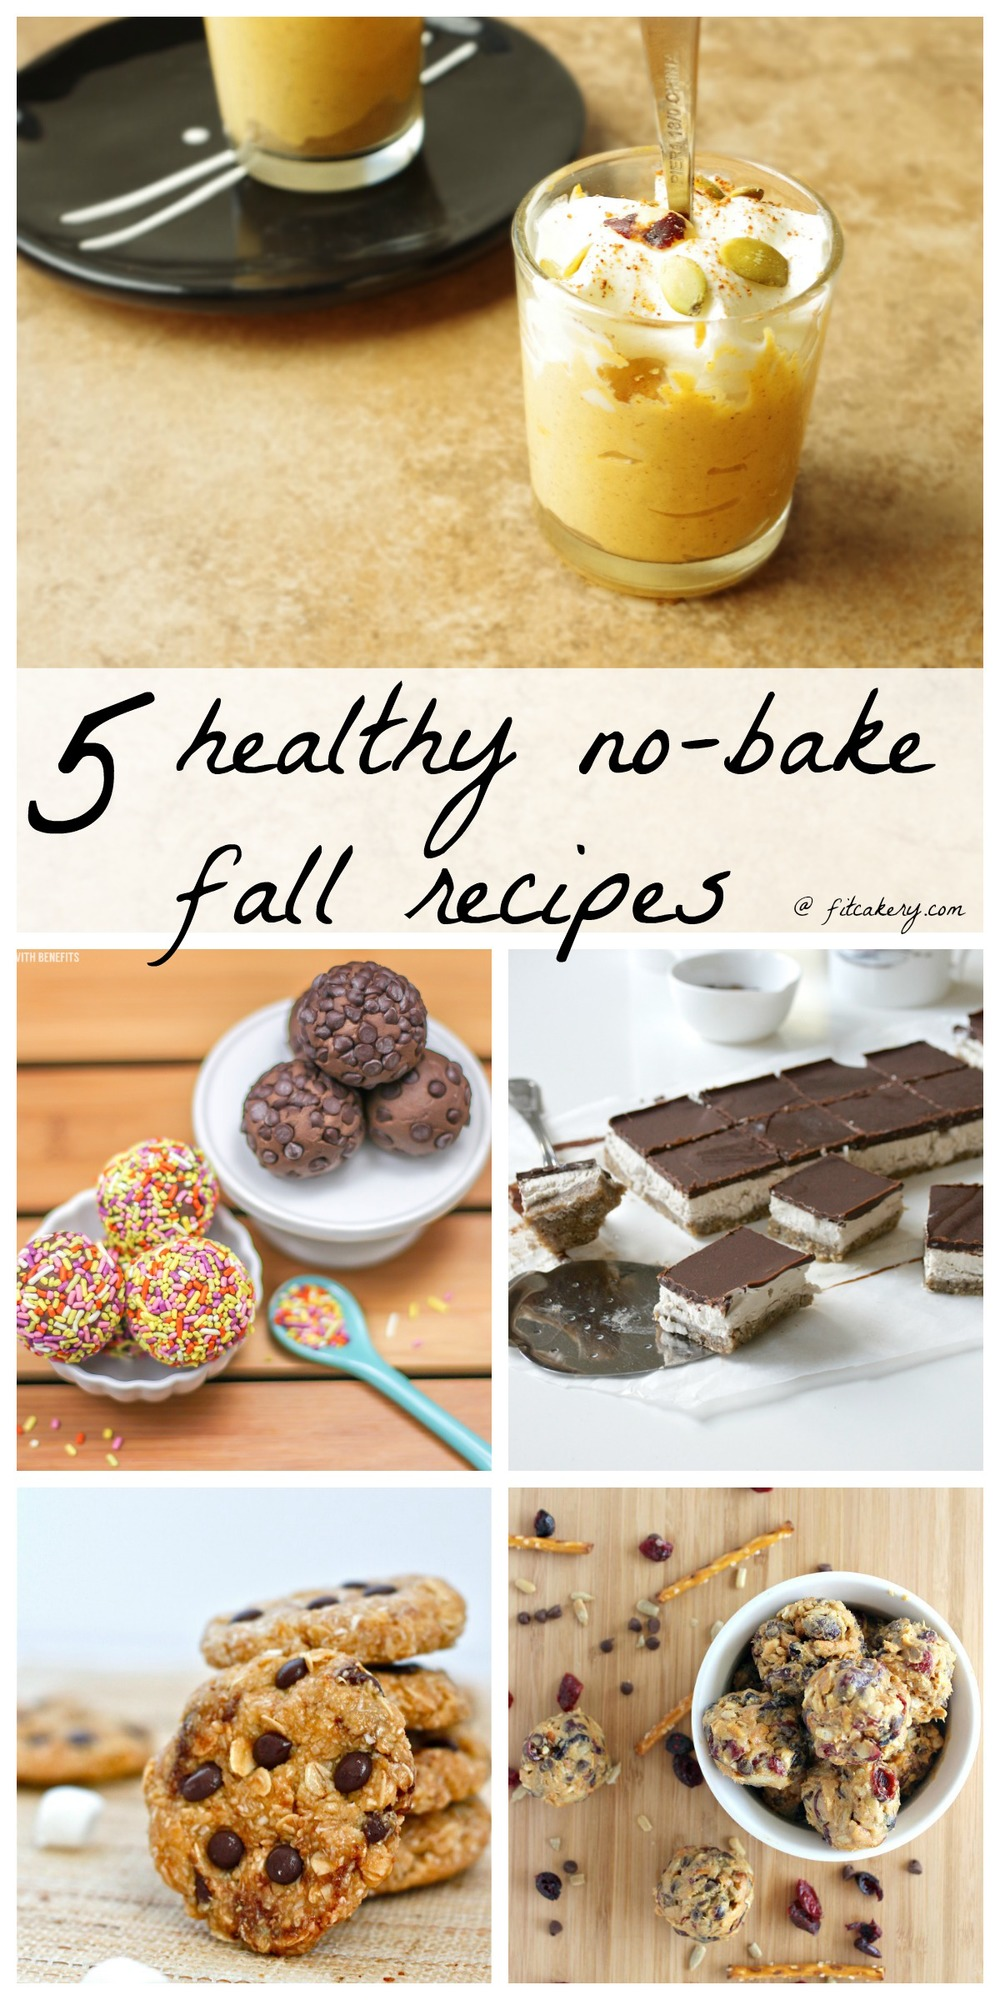 Some of the tastiest recipes on the blogosphere - all quick + healthy - here in time to squash the holiday sweet tooth!